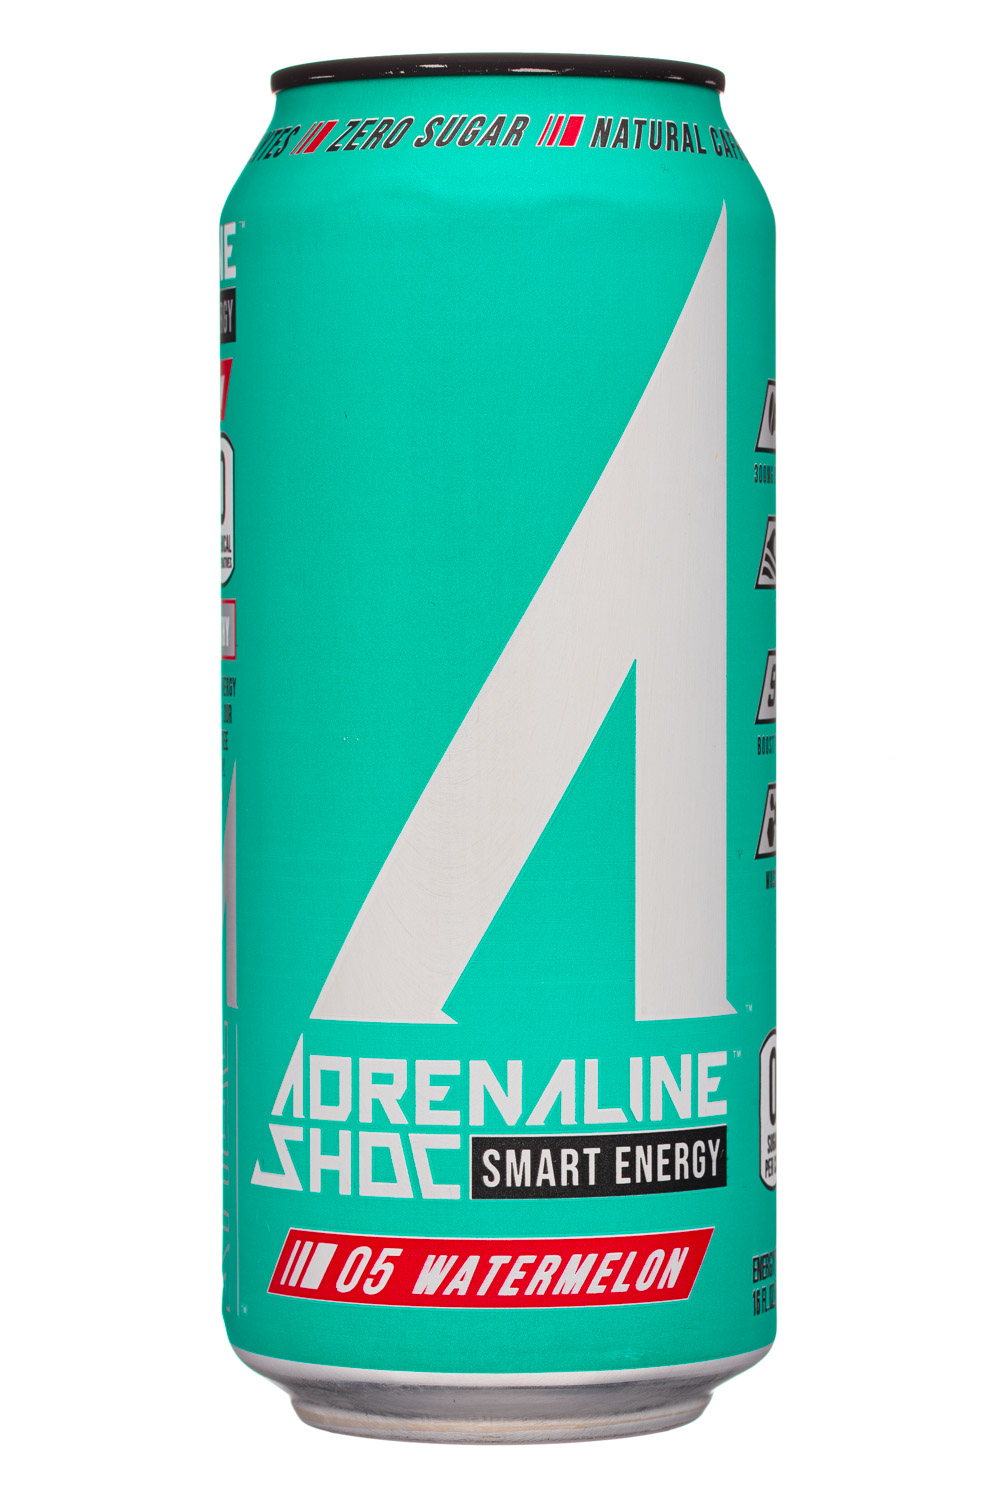 Adrenaline Shoc - 05 Watermelon